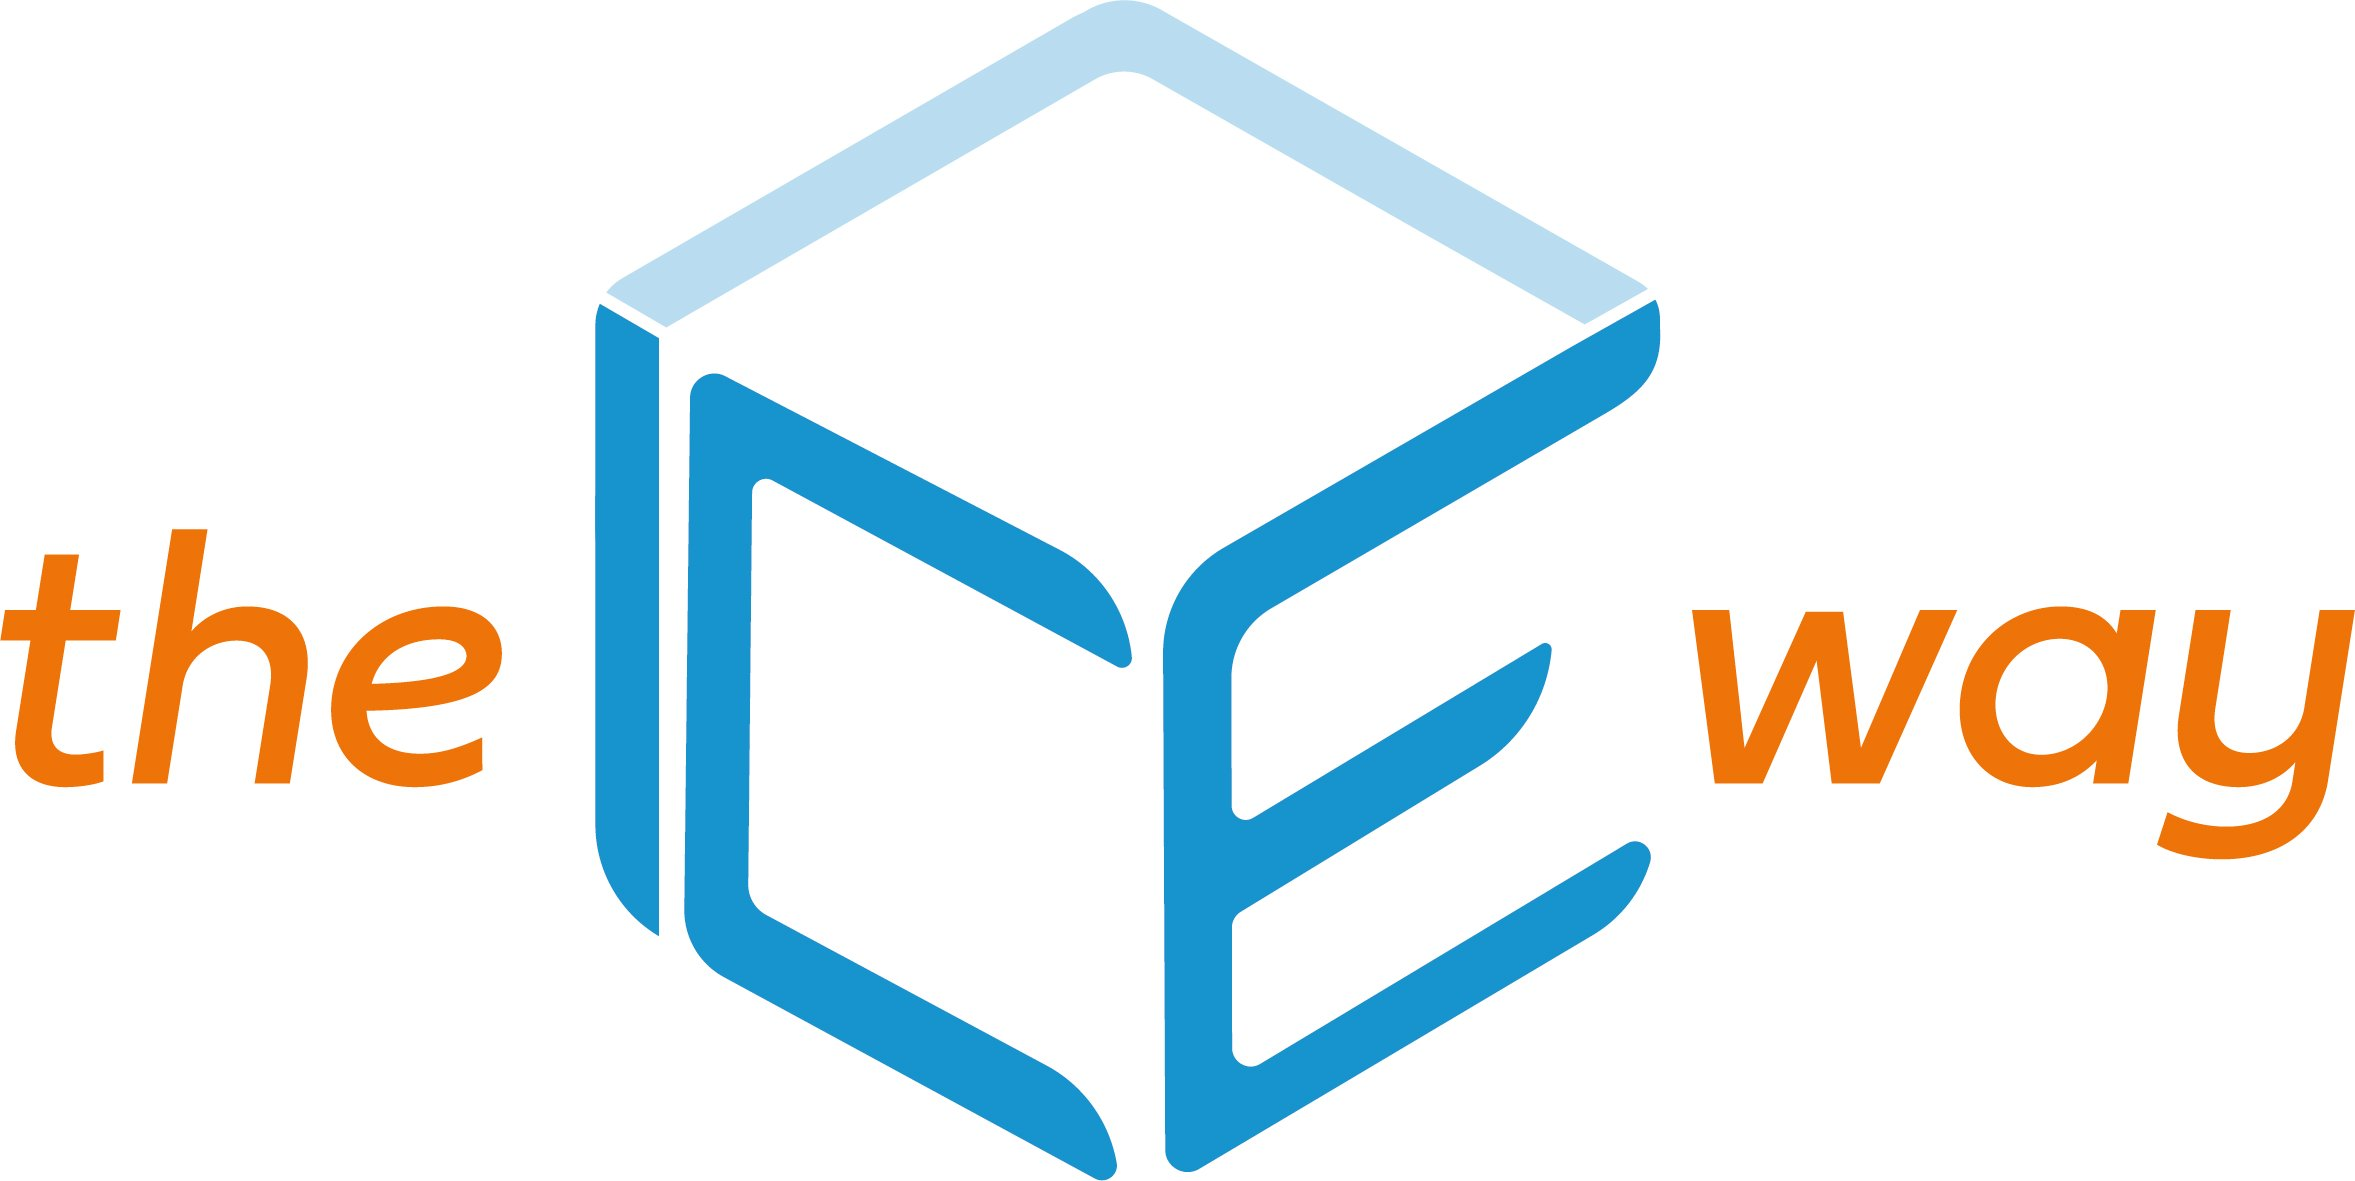 theICEway Introductory Video